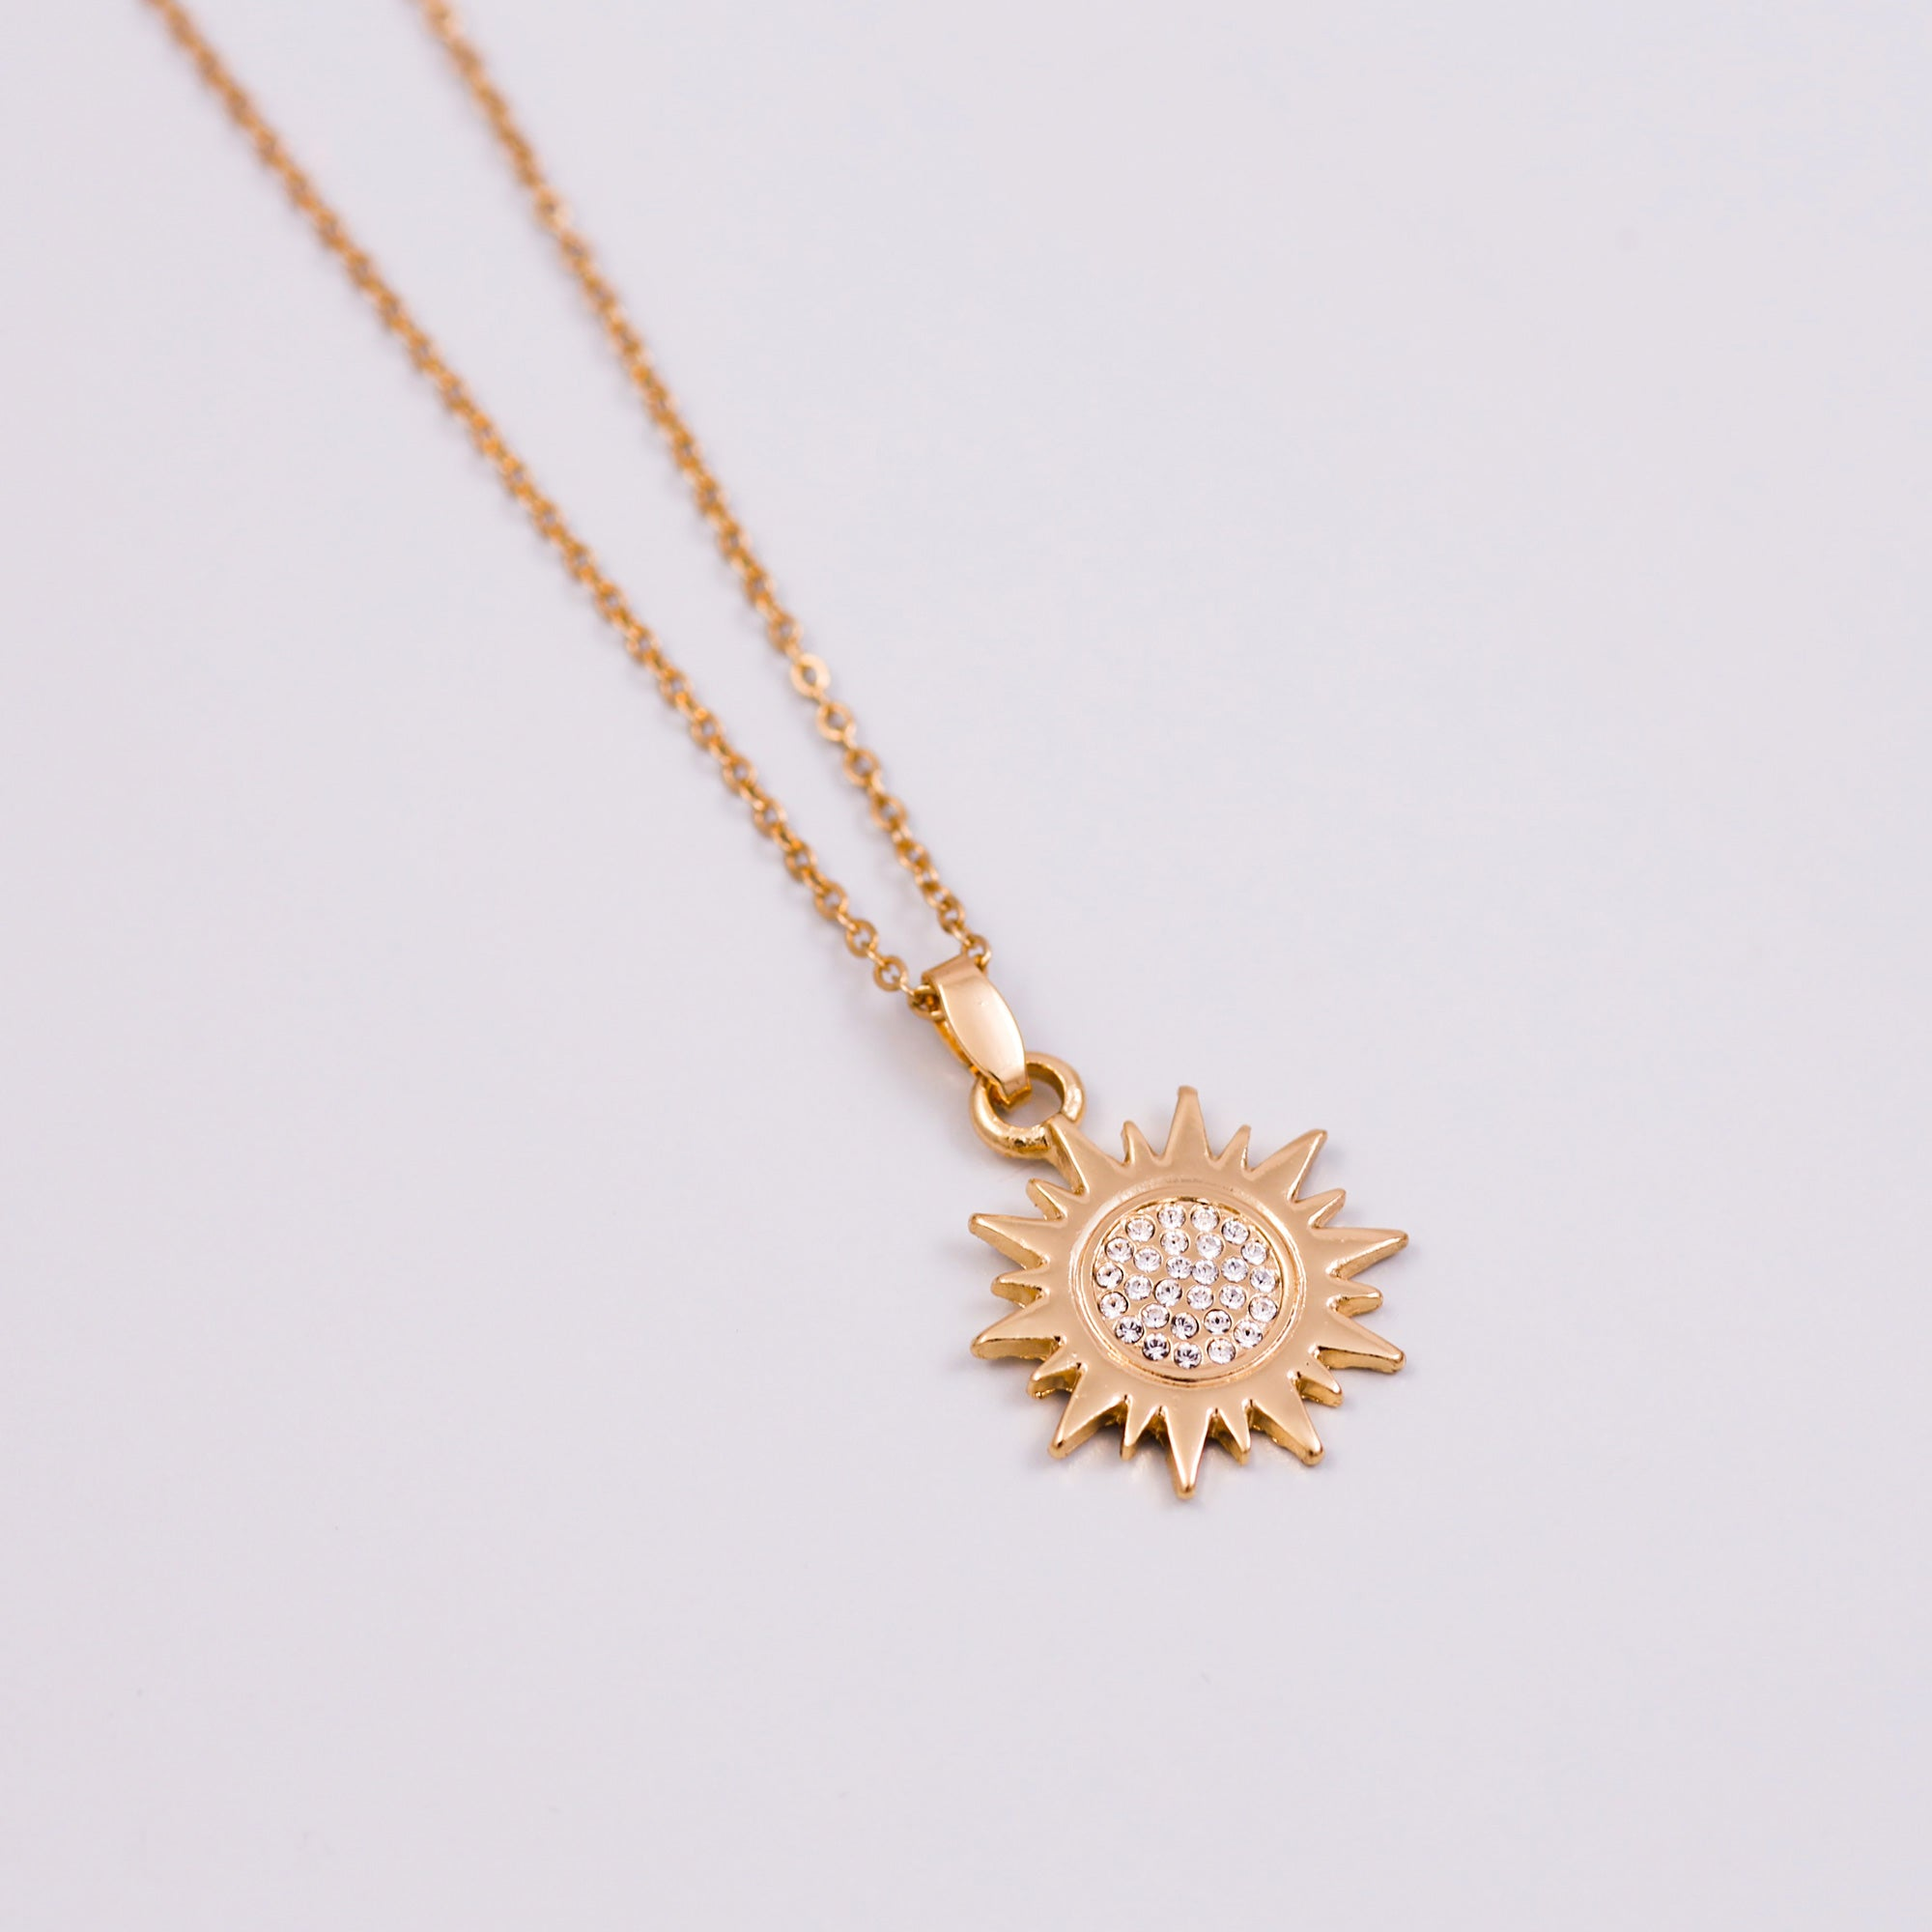 sun enlarged necklace pendant tone necklaces tondo products bvlgari two jewelry